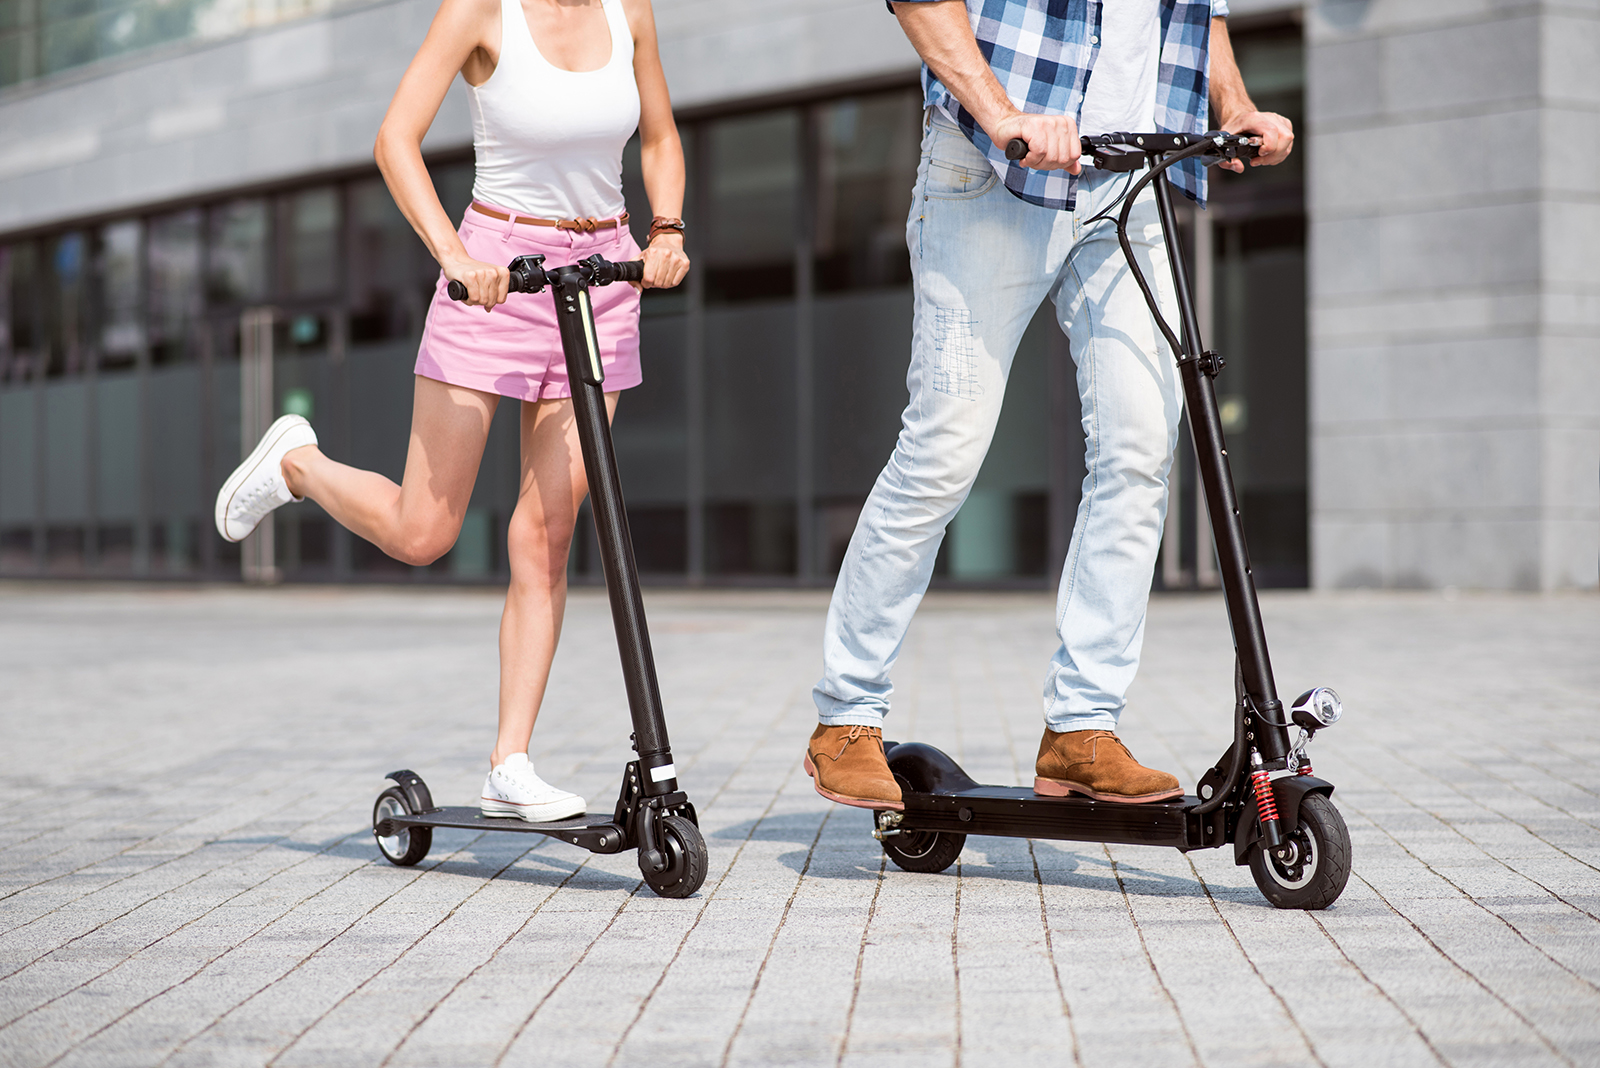 couple riding electric scooters